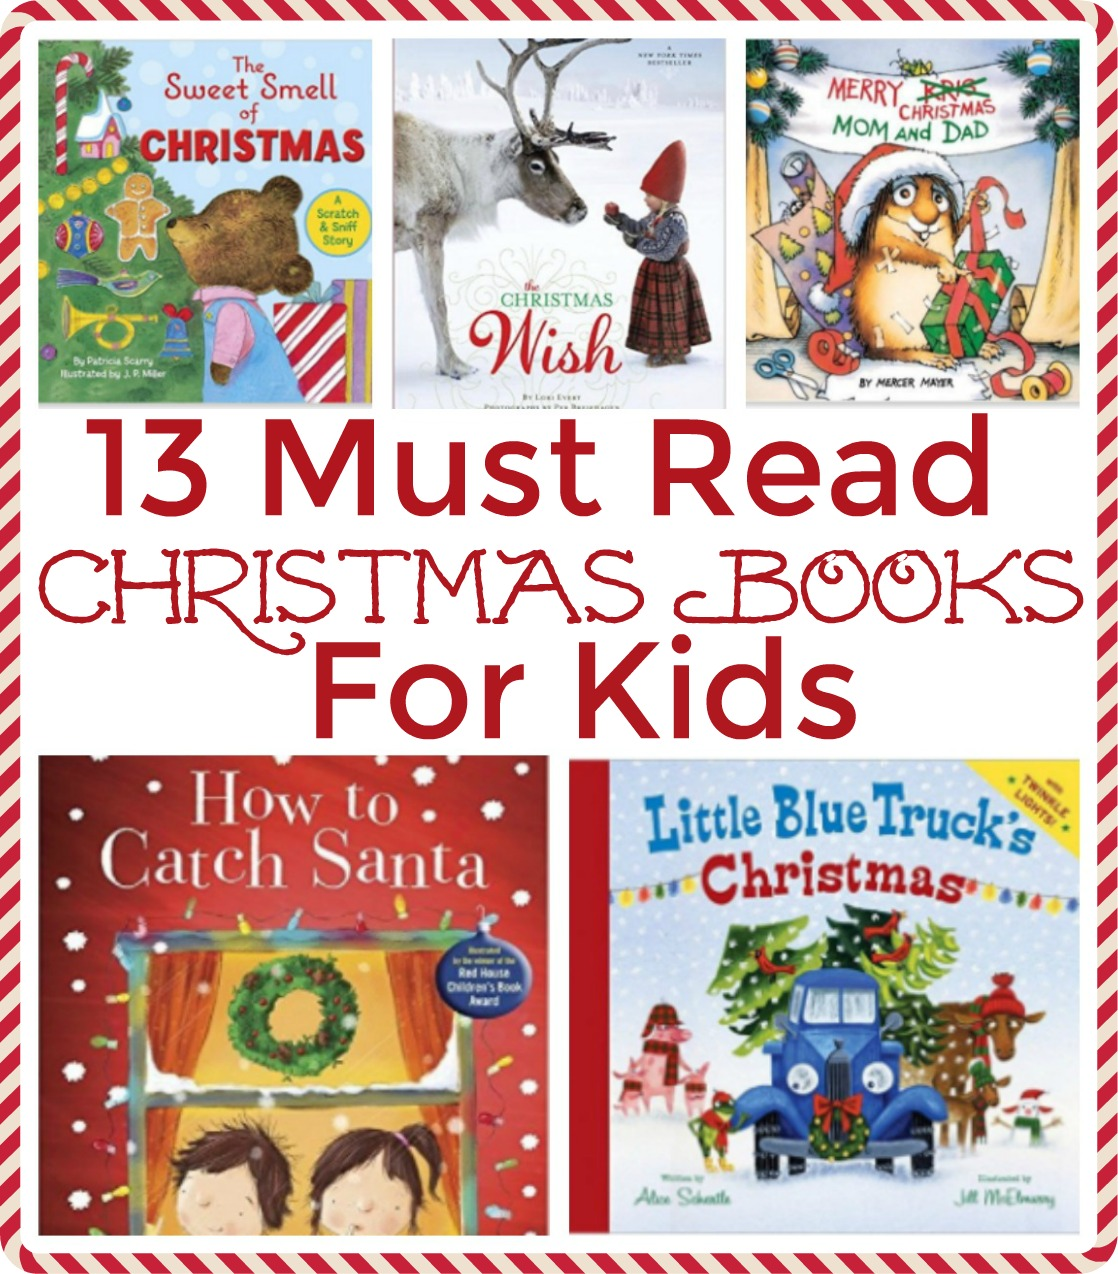 13 Must Read Christmas Books for Kids